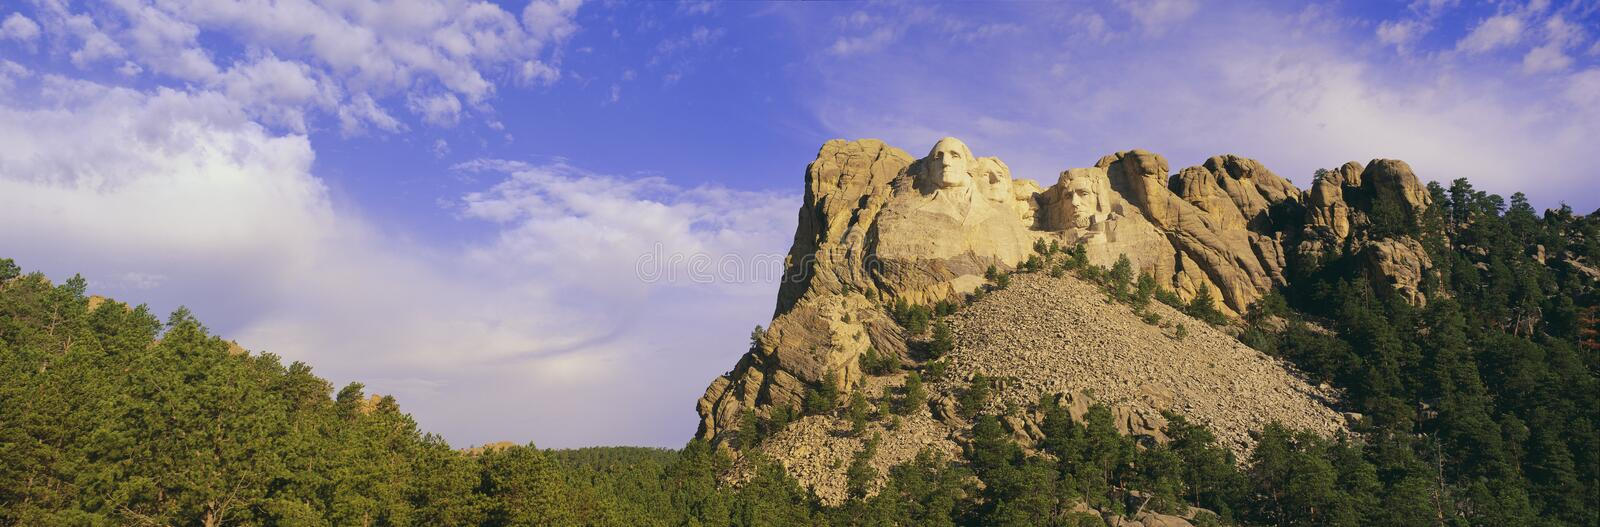 Mt. Rushmore, SD Stock Images